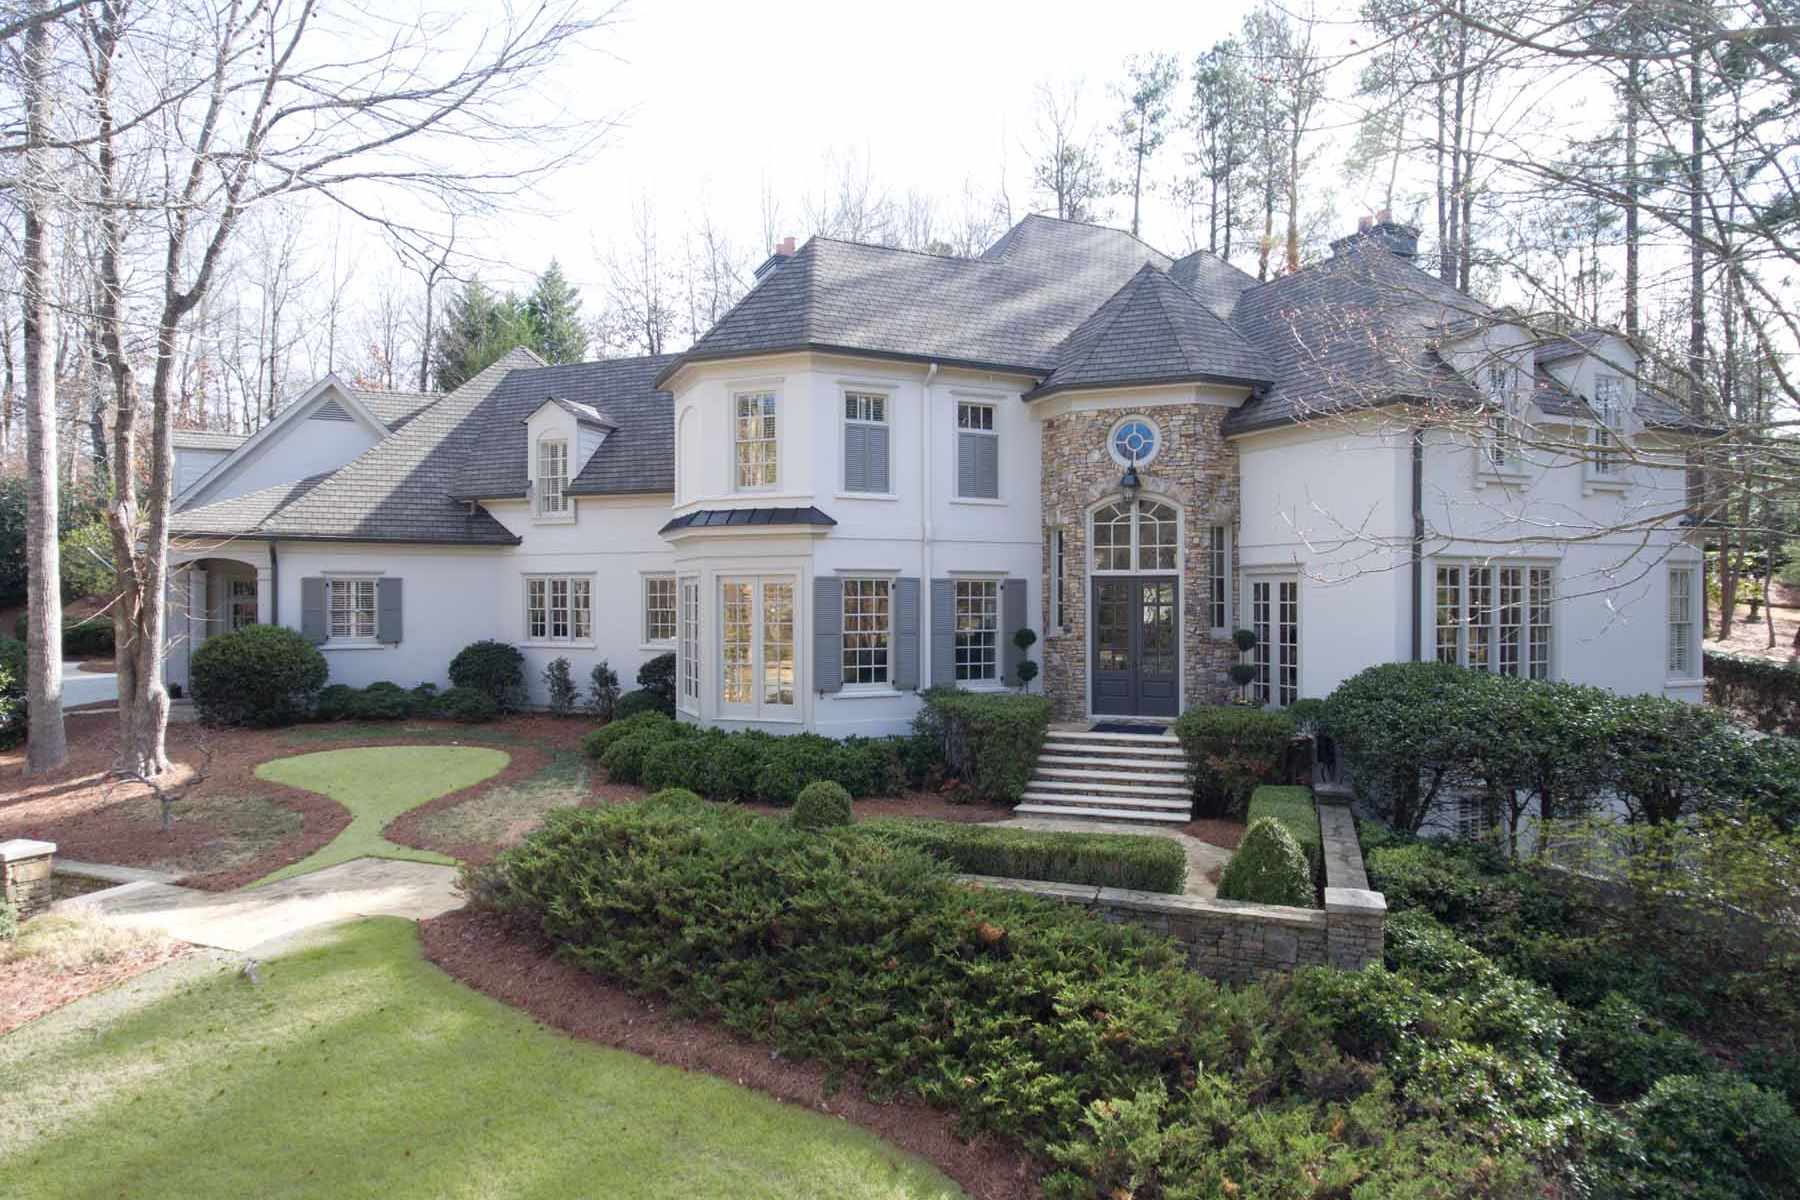 一戸建て のために 売買 アット Beautifully Renovated Country Club Of The South Decorator Home 405 Covington Cove Alpharetta, ジョージア, 30022 アメリカ合衆国